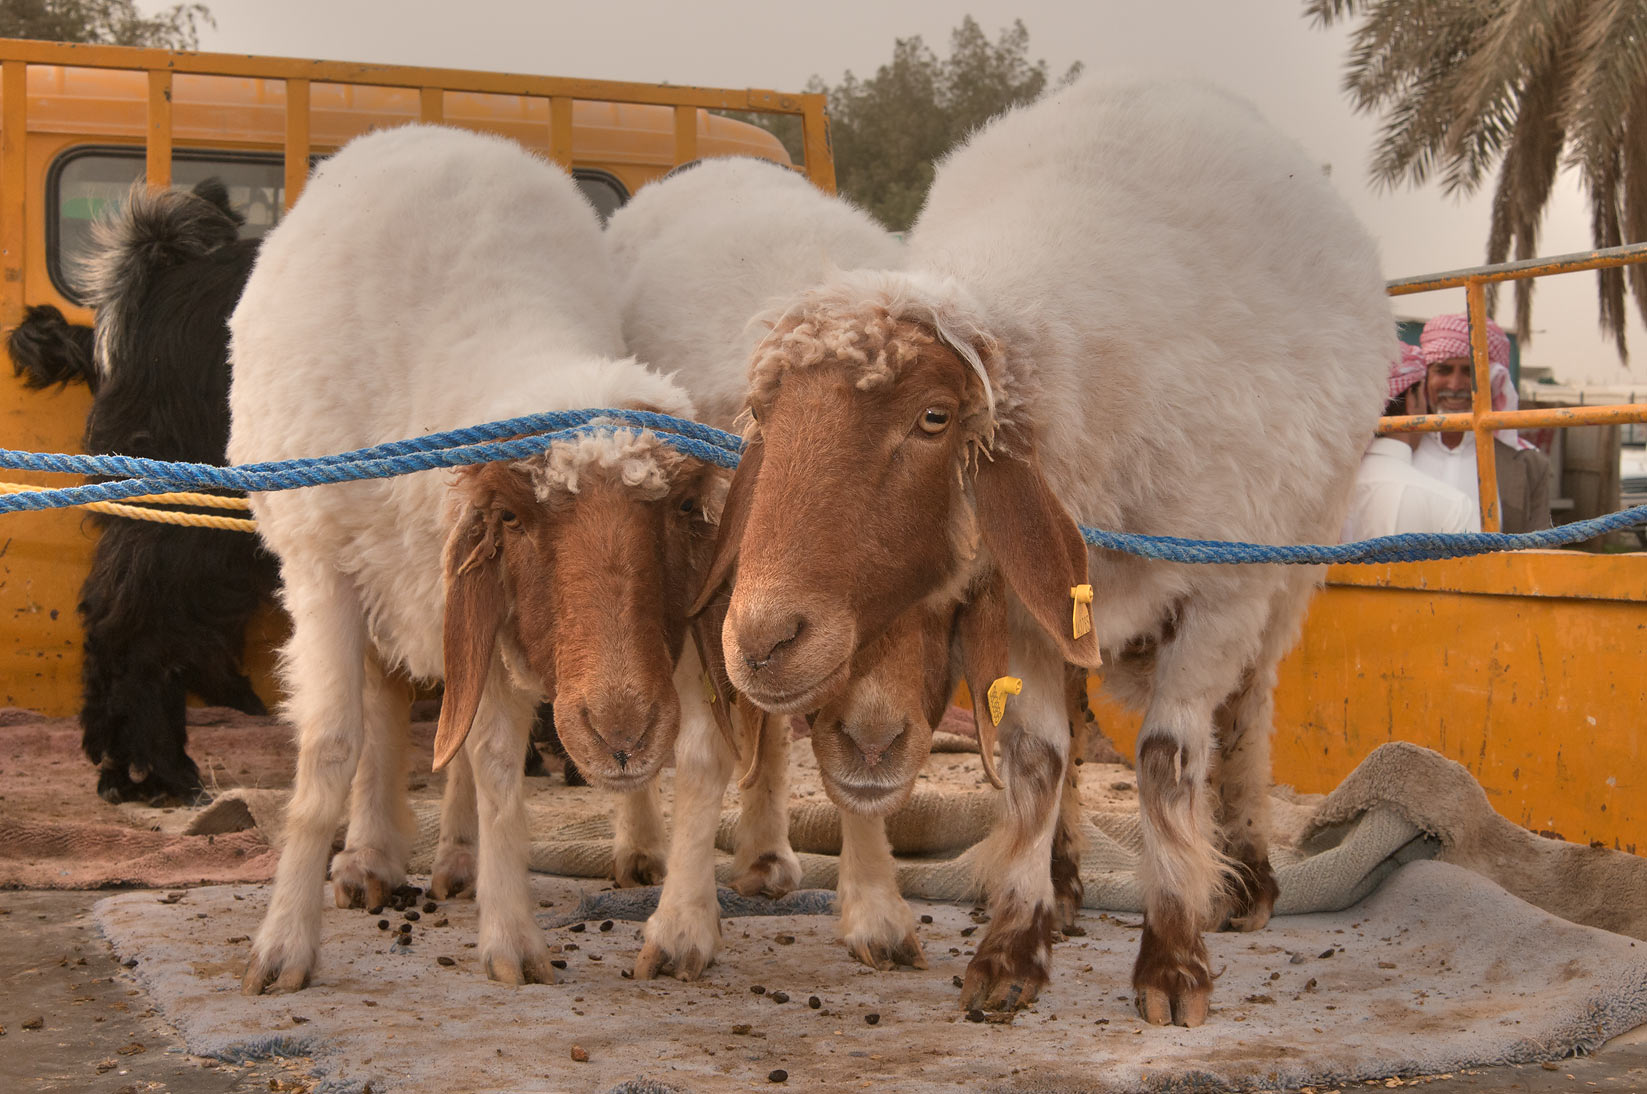 Animals in a truck in Sheep Market, Wholesale Markets area. Doha, Qatar